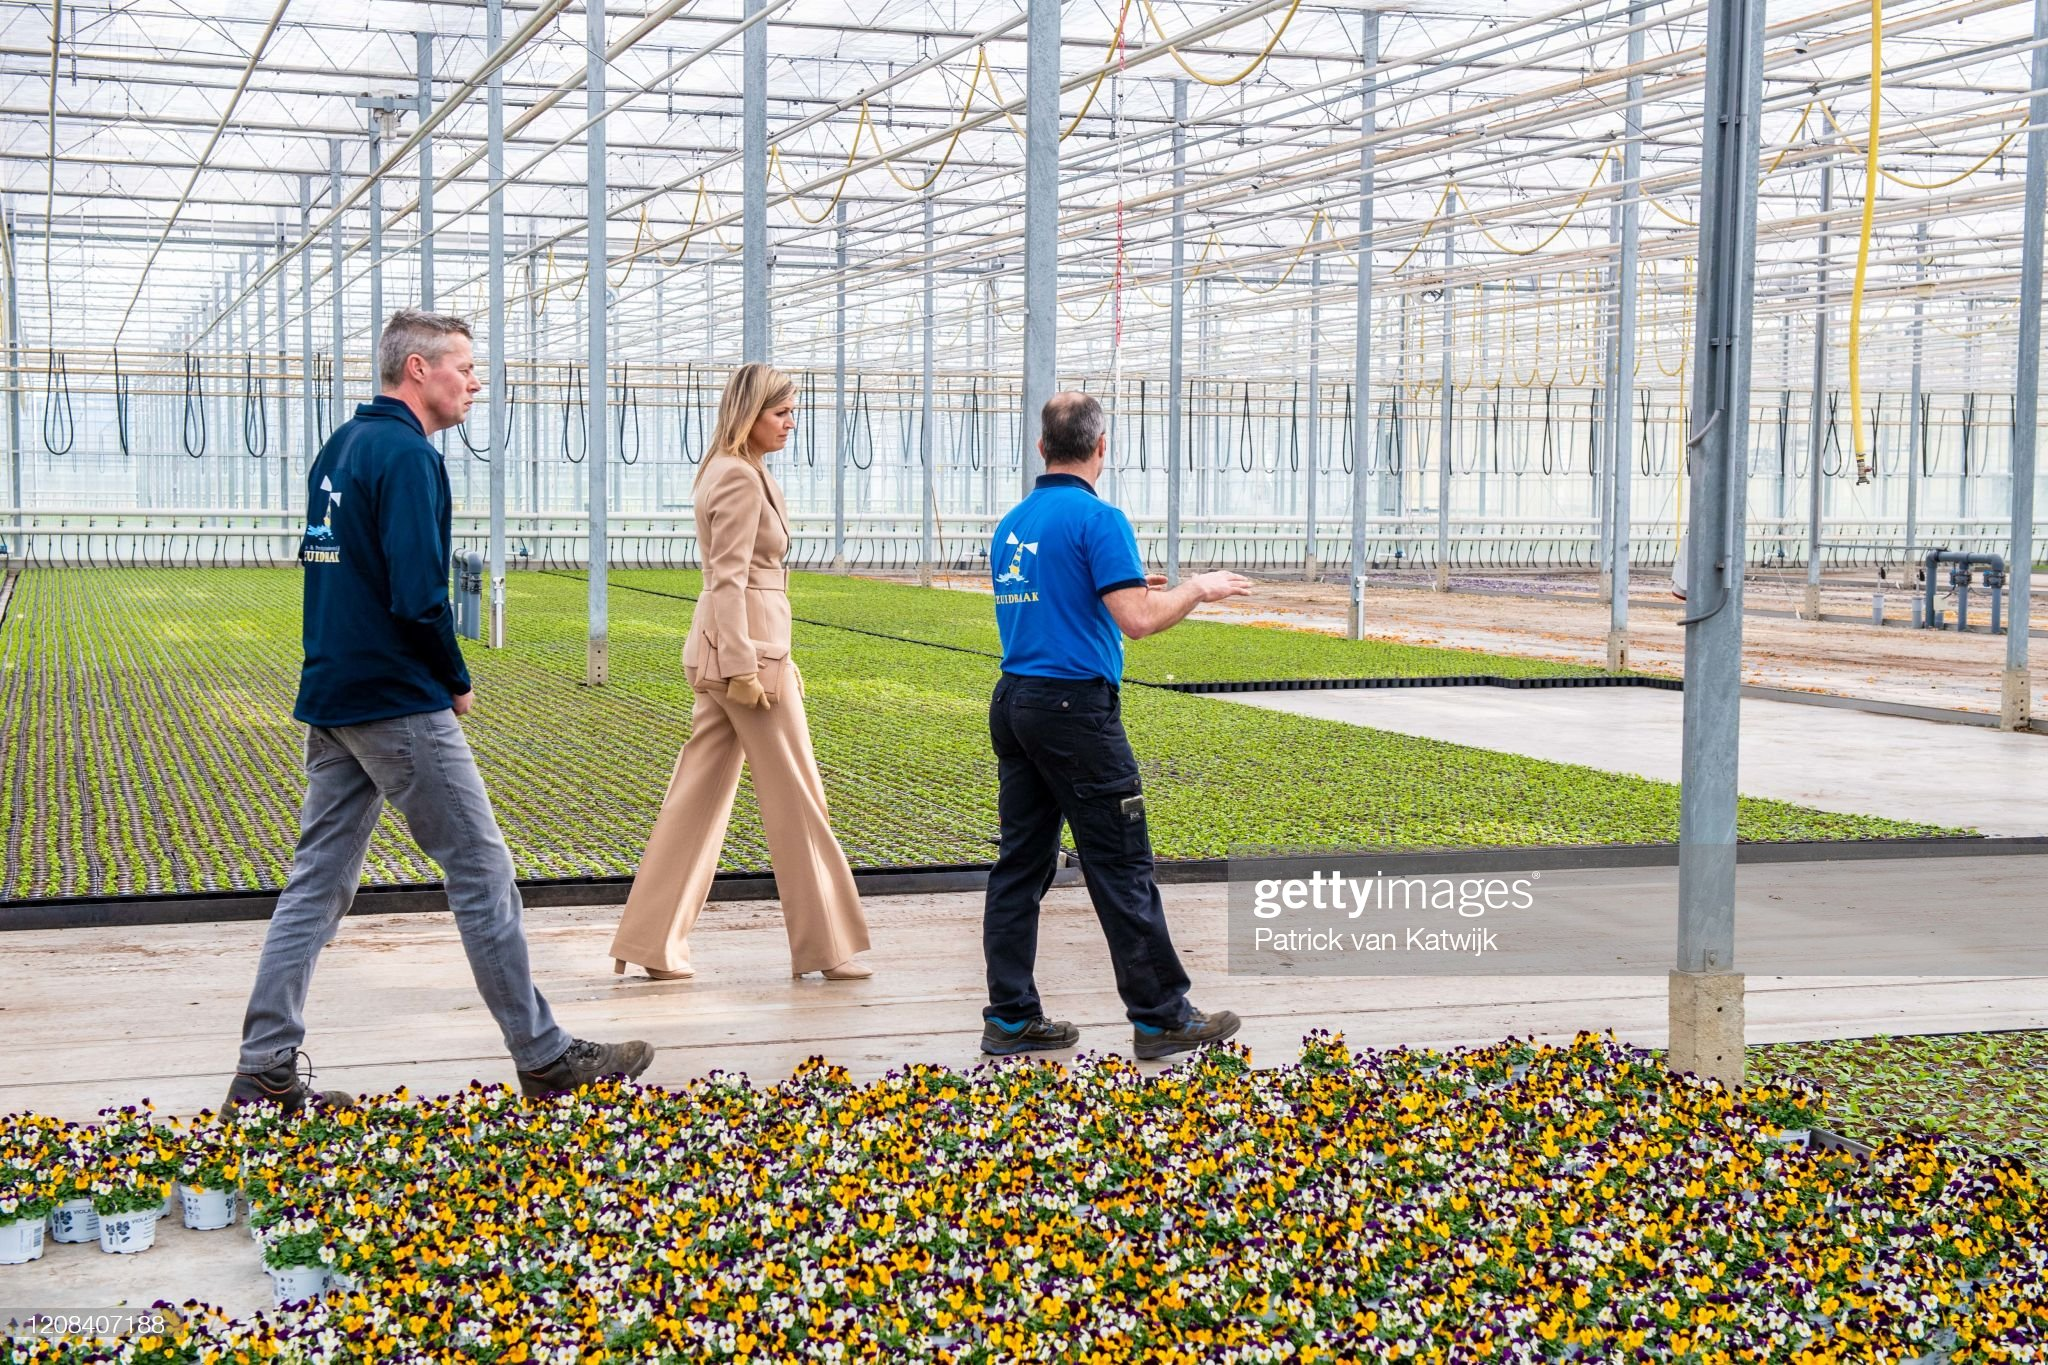 https://media.gettyimages.com/photos/queen-maxima-of-the-netherlands-visits-zuidbaak-floriculture-company-picture-id1208407188?s=2048x2048